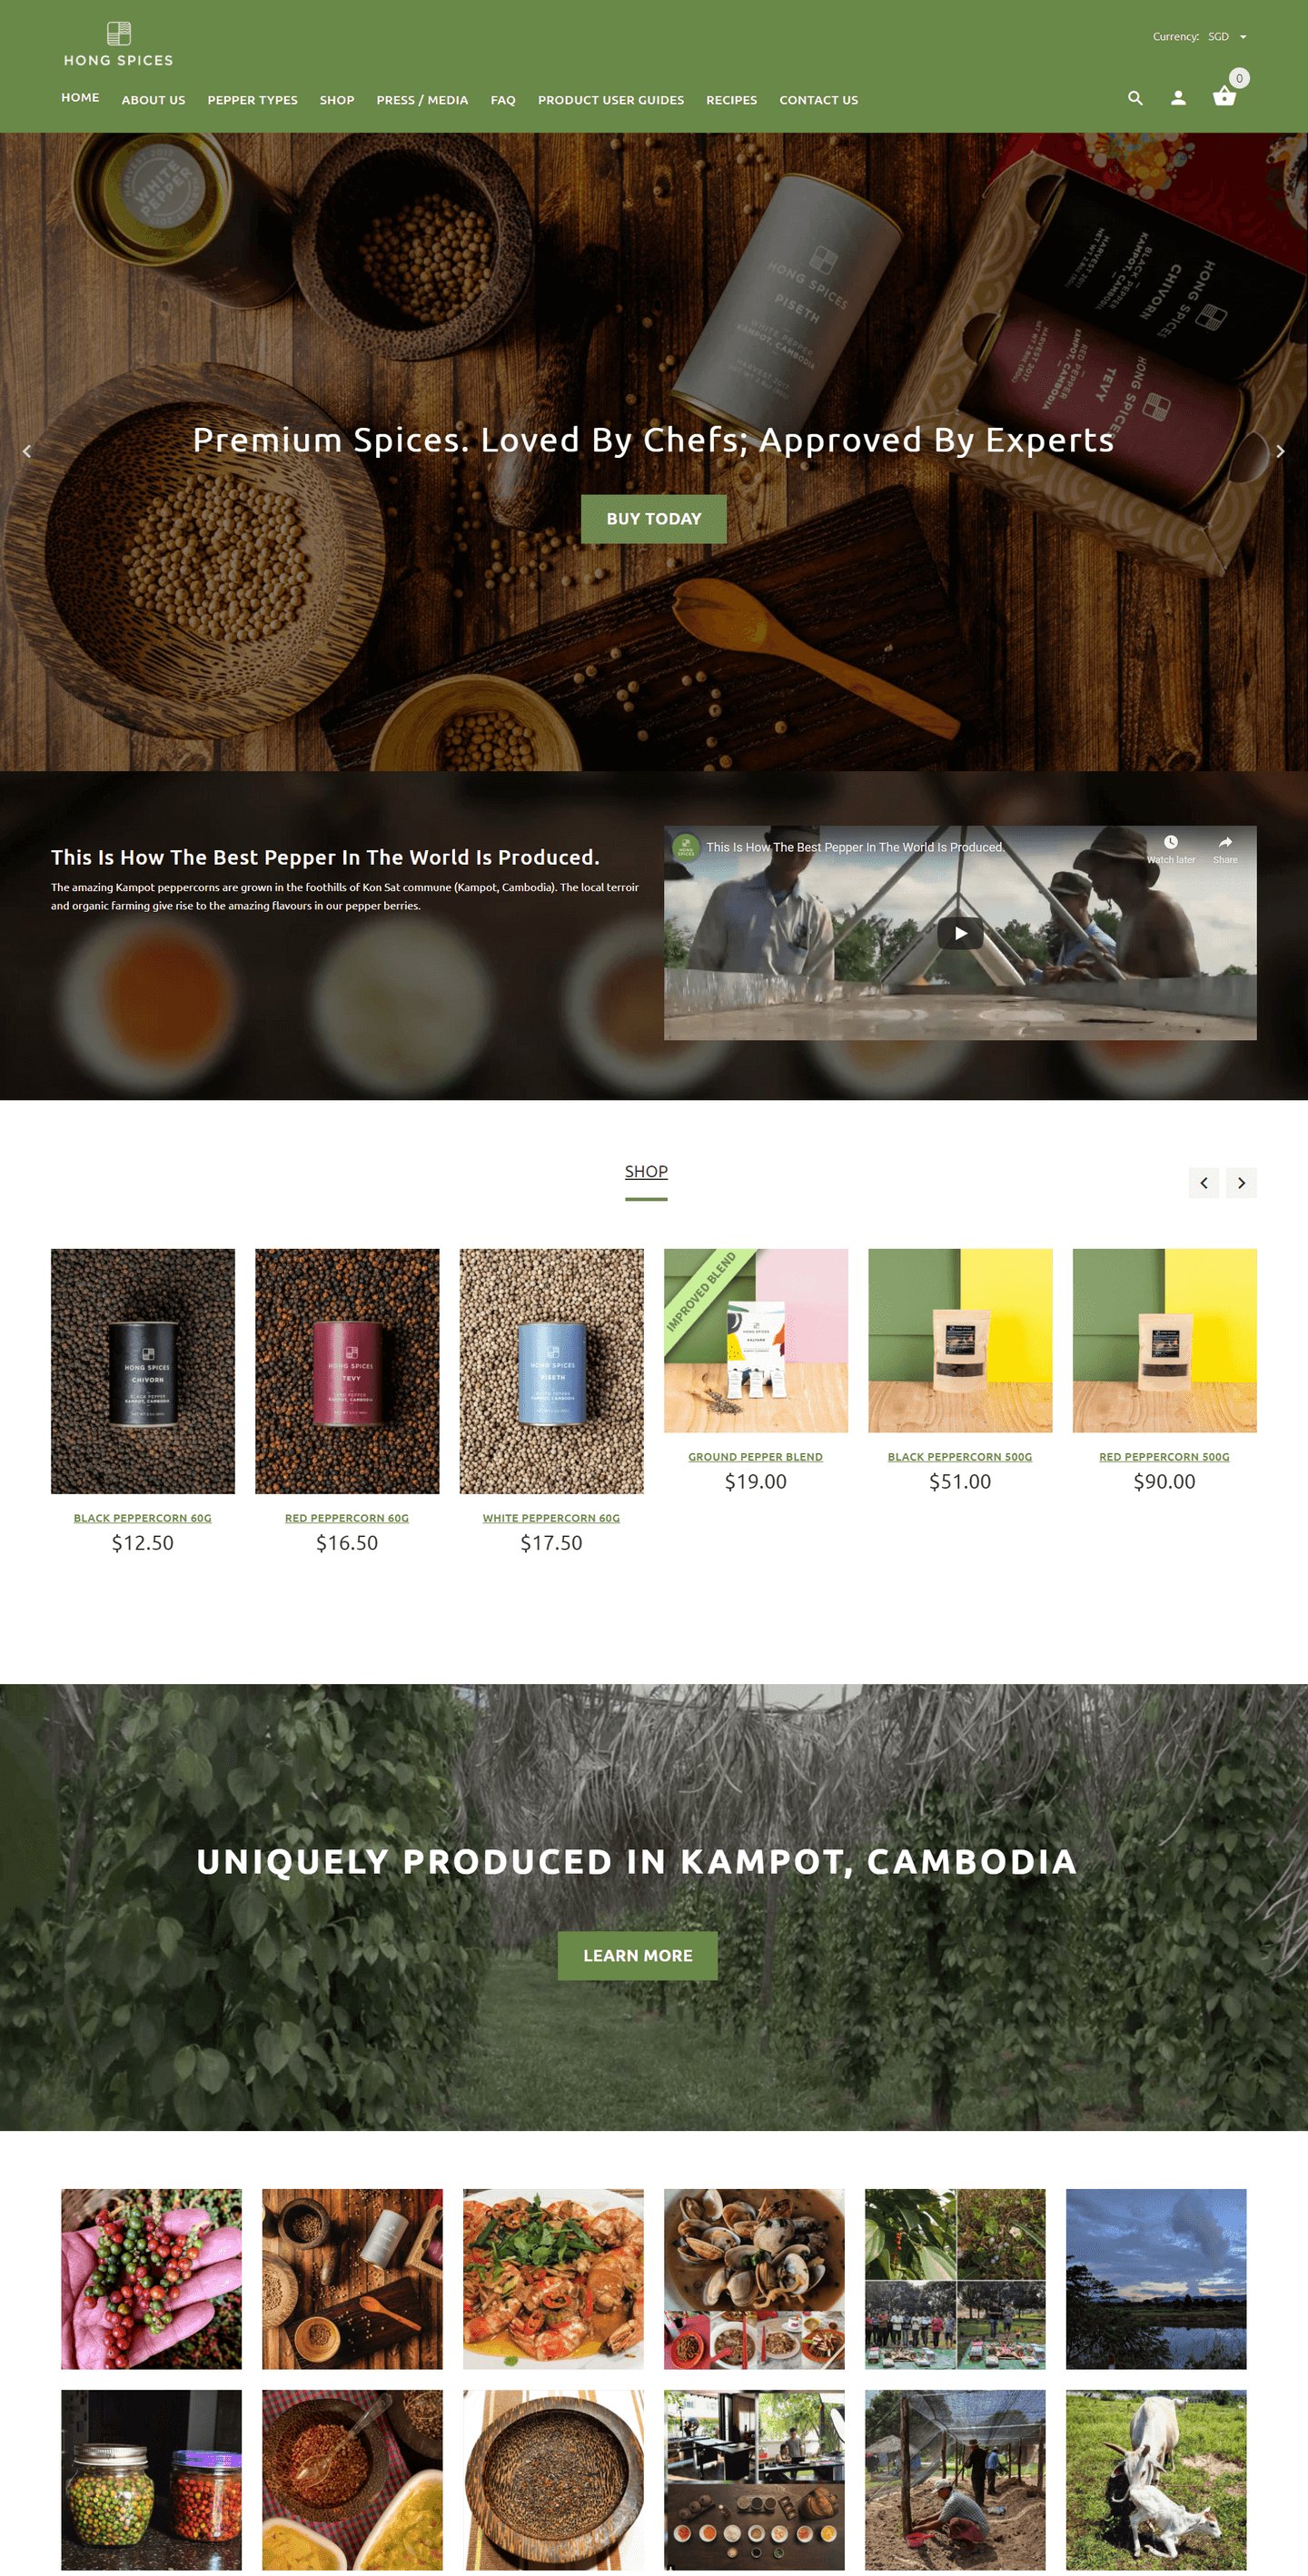 Hong Spices Neo360 Website Design